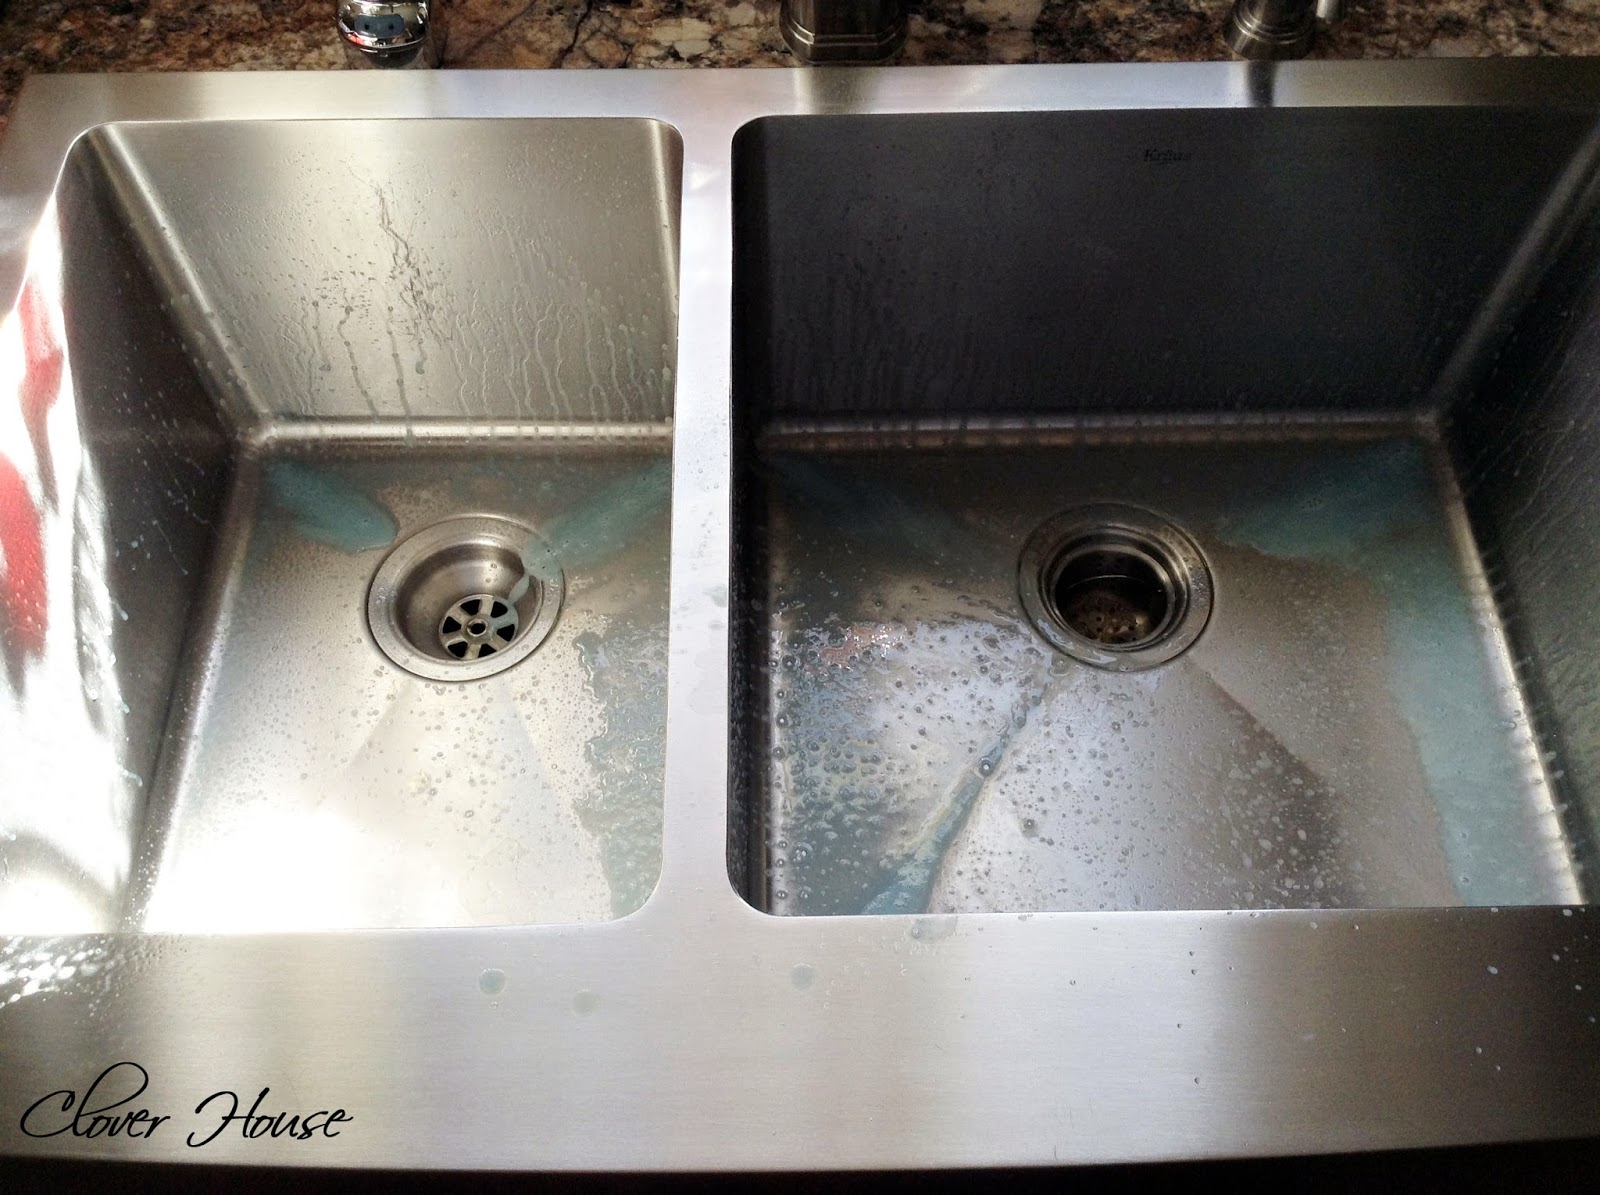 clover house: make your stainless sink shine - my natural secret